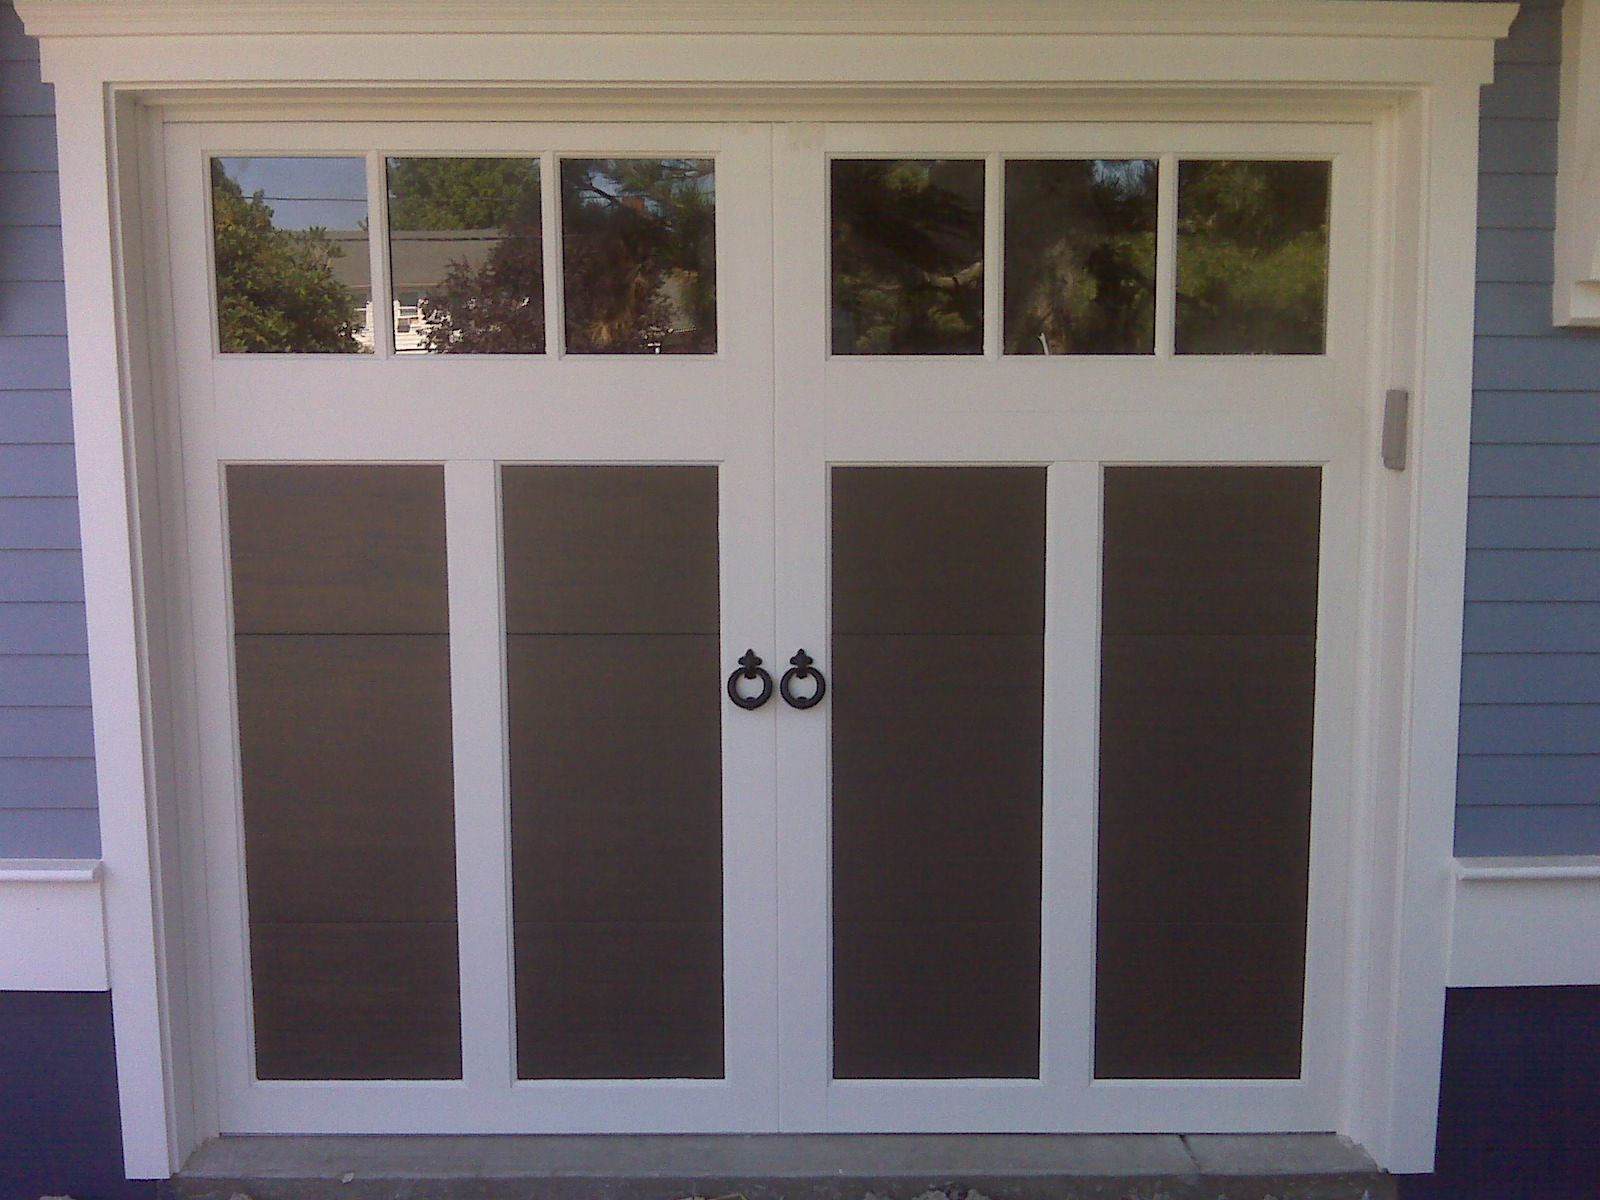 Steel Garage Doors Coachman Carriage House Doors Clopay Door Garage Doors Carriage Garage Doors Garage Door Hardware